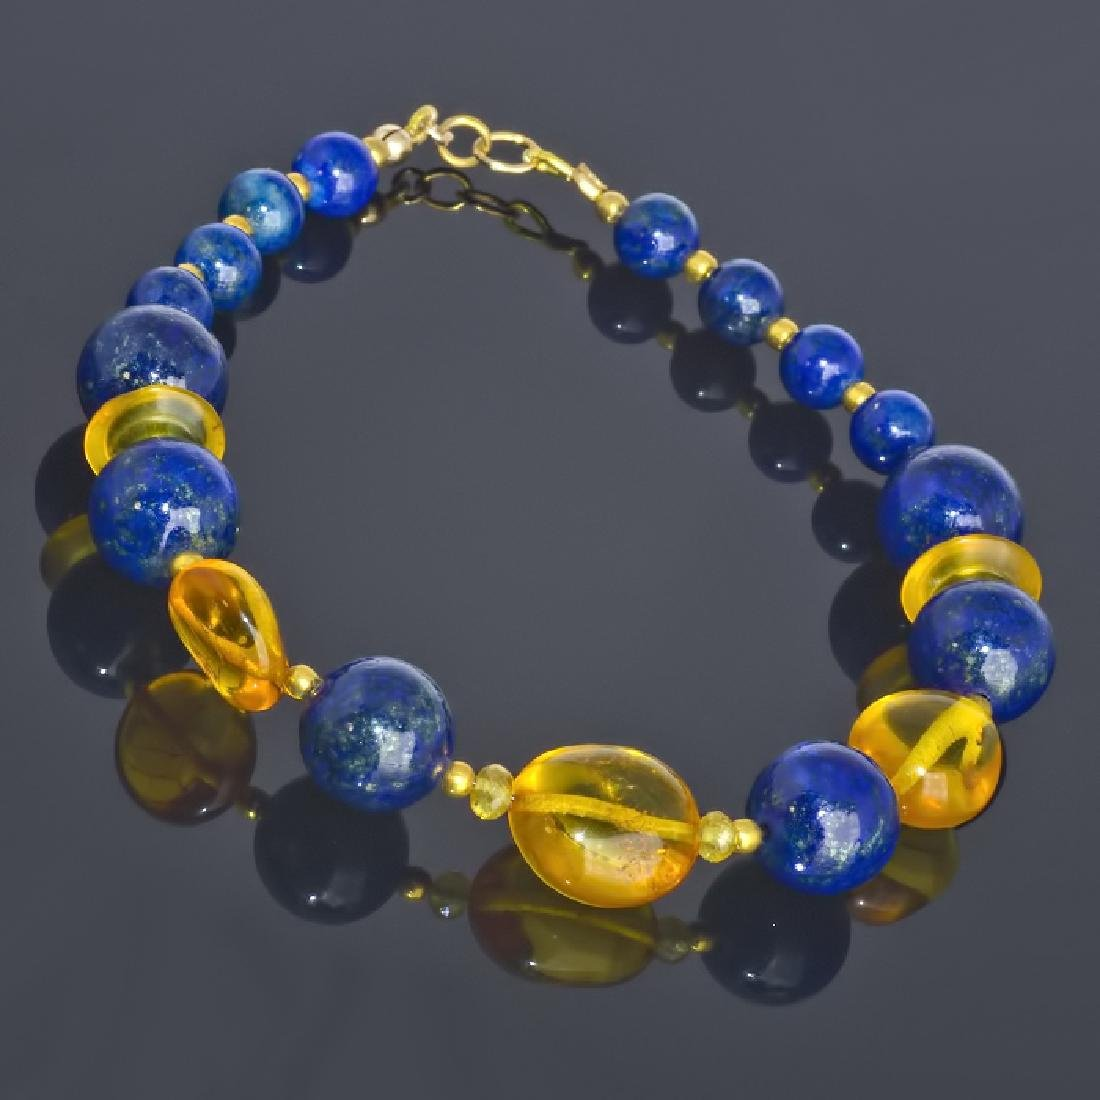 Lapis lazuli and Amber bracelet with Sapphires - 2